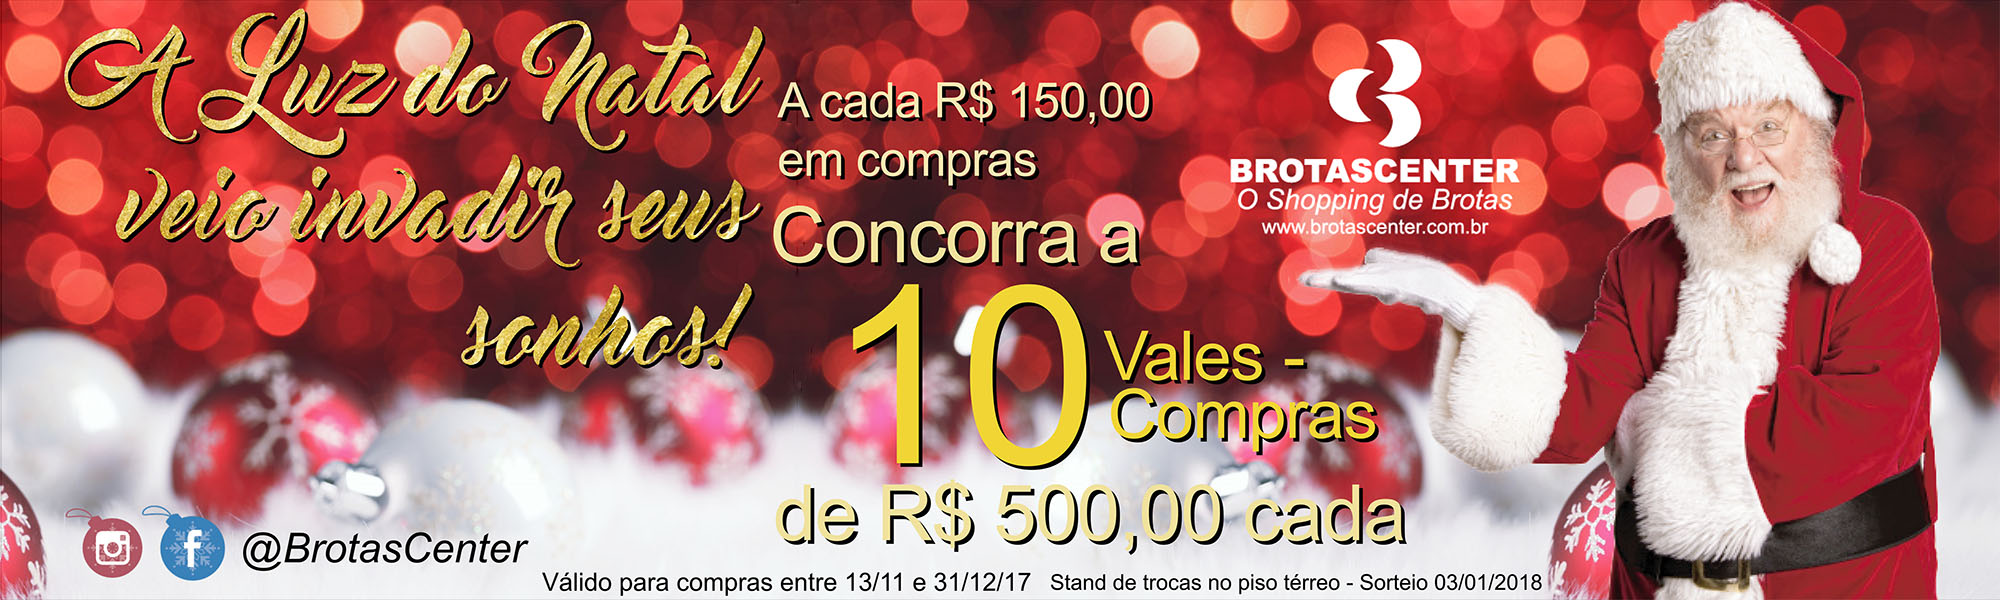 Natal é no Brotascenter!